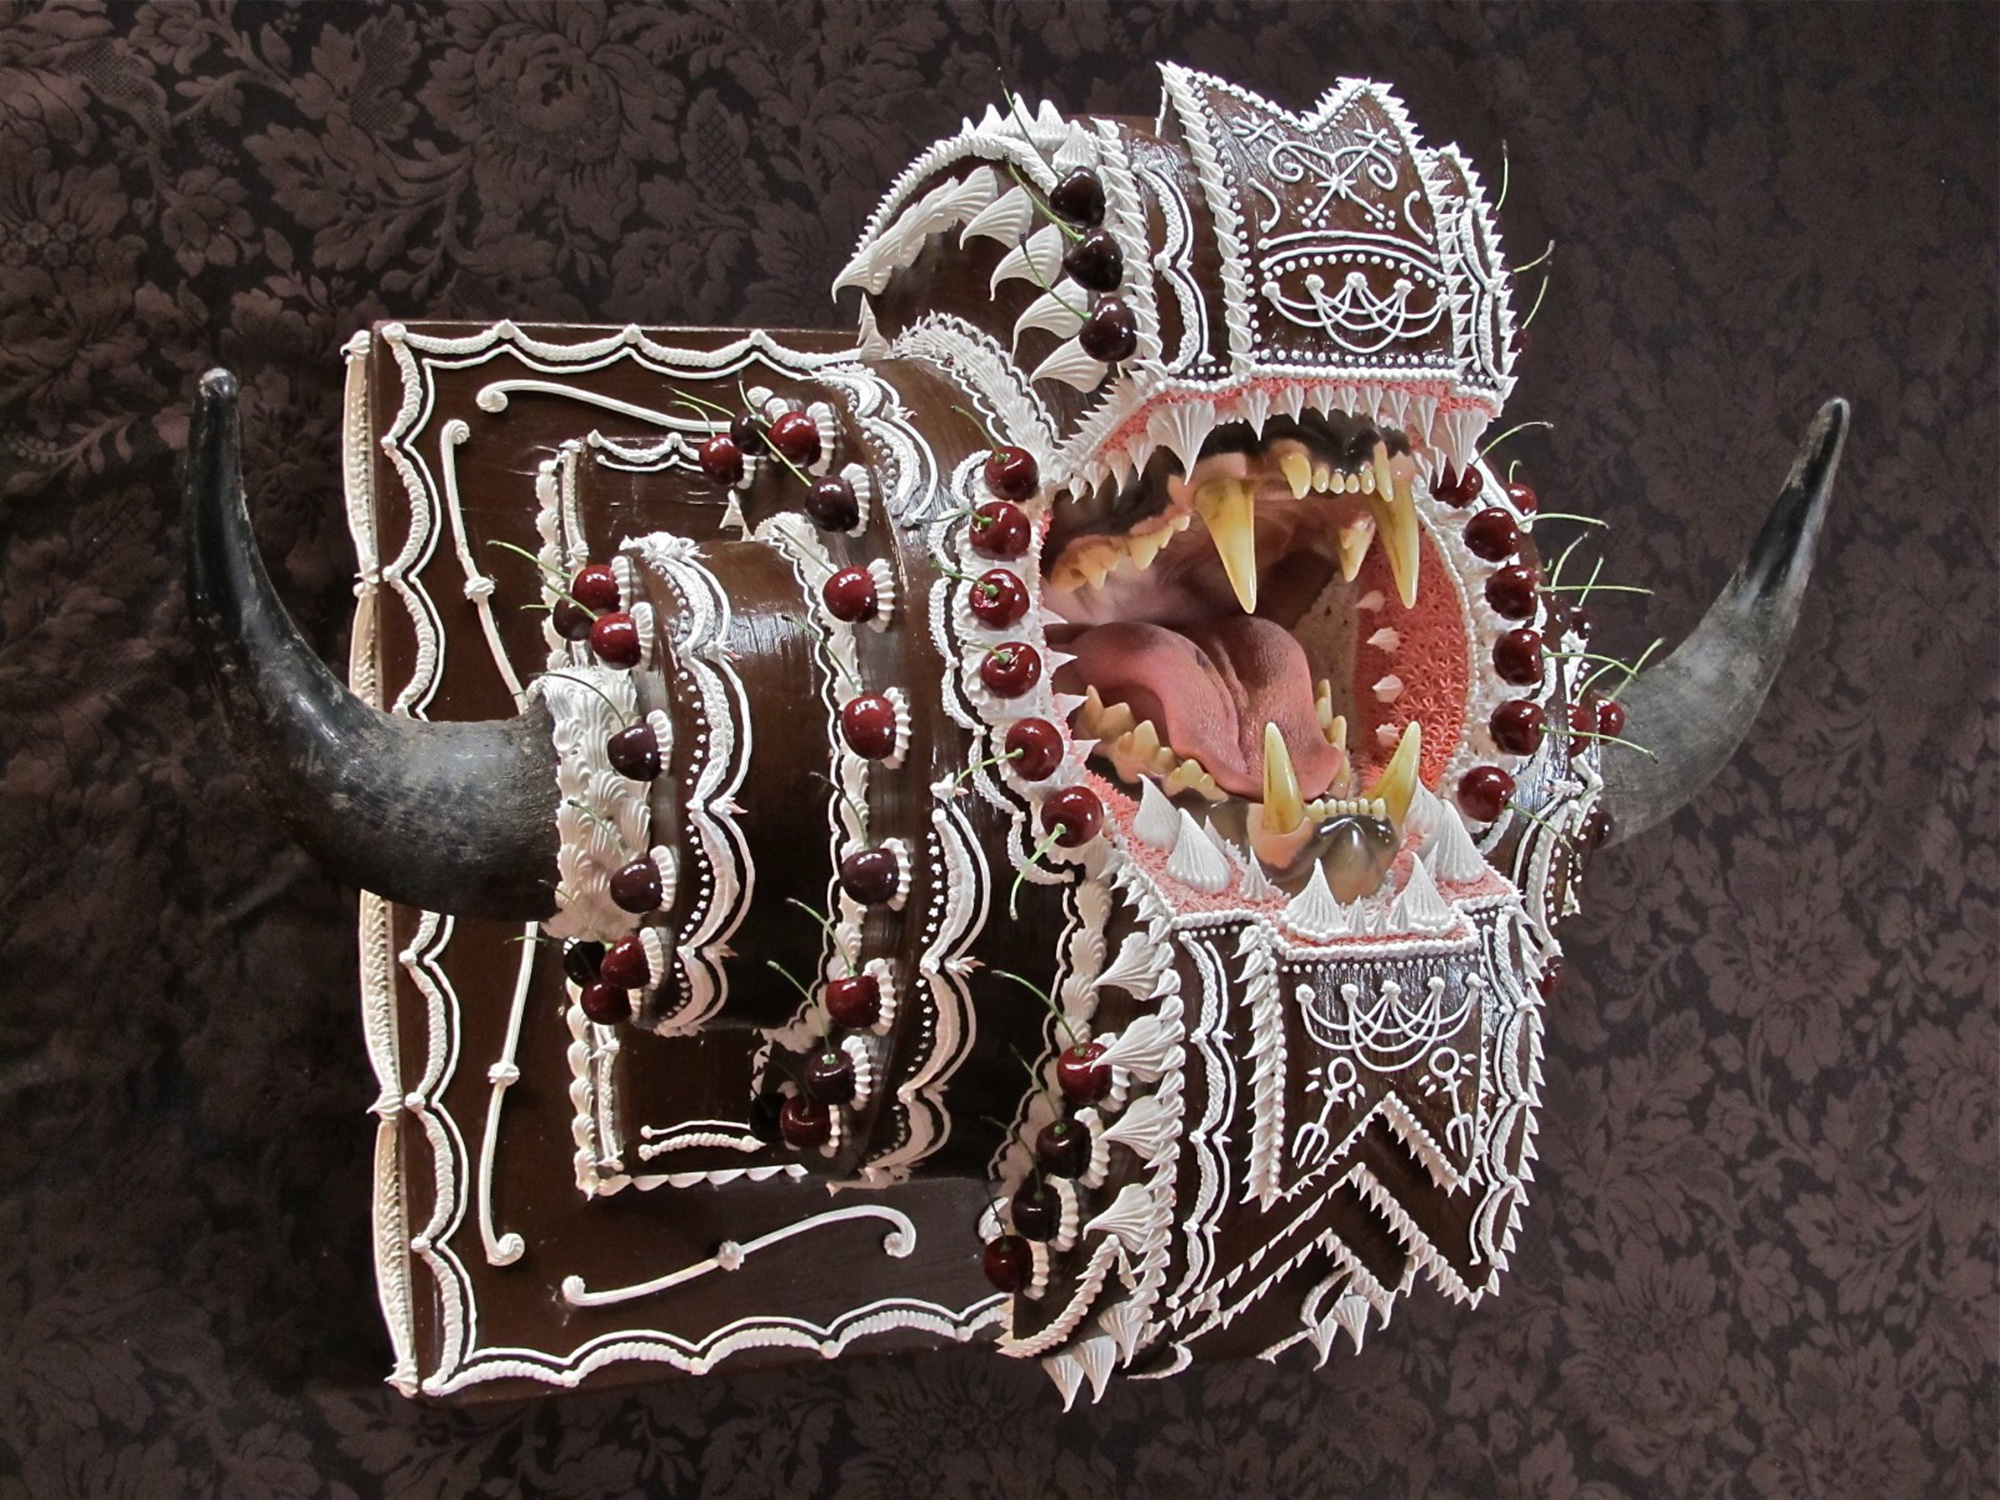 Cake Fangs: Sweetly Lethal Sculptures by Scott Hove